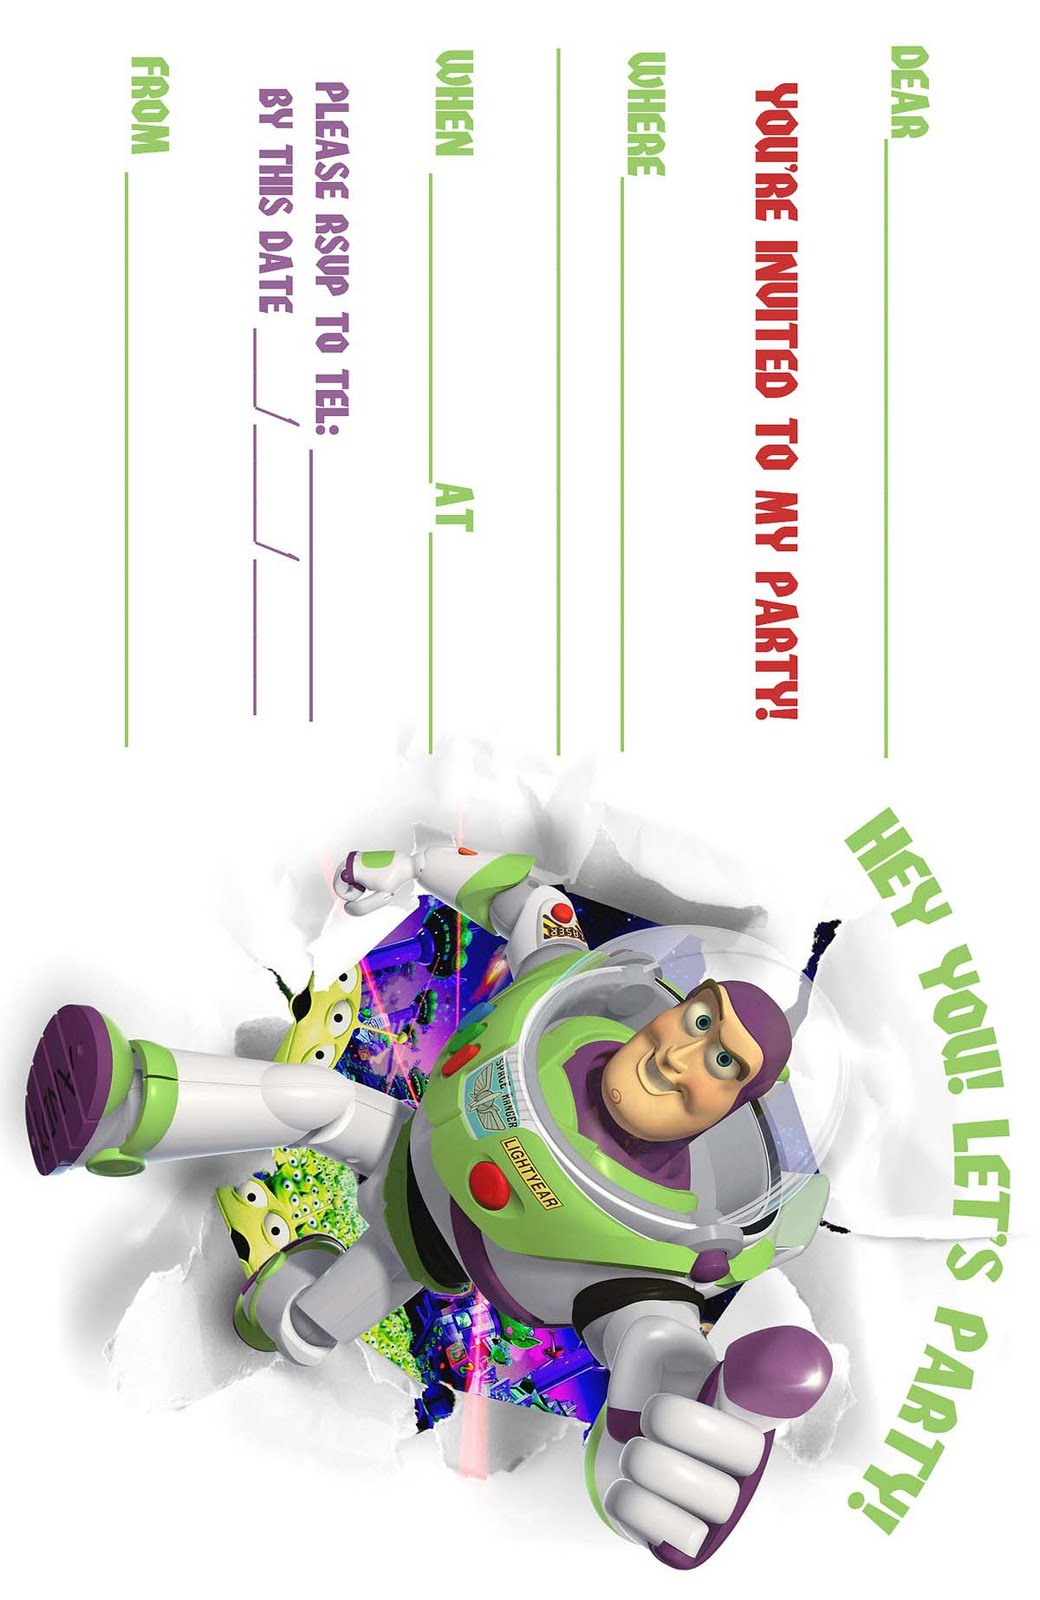 Refreshing image intended for free printable toy story invitations